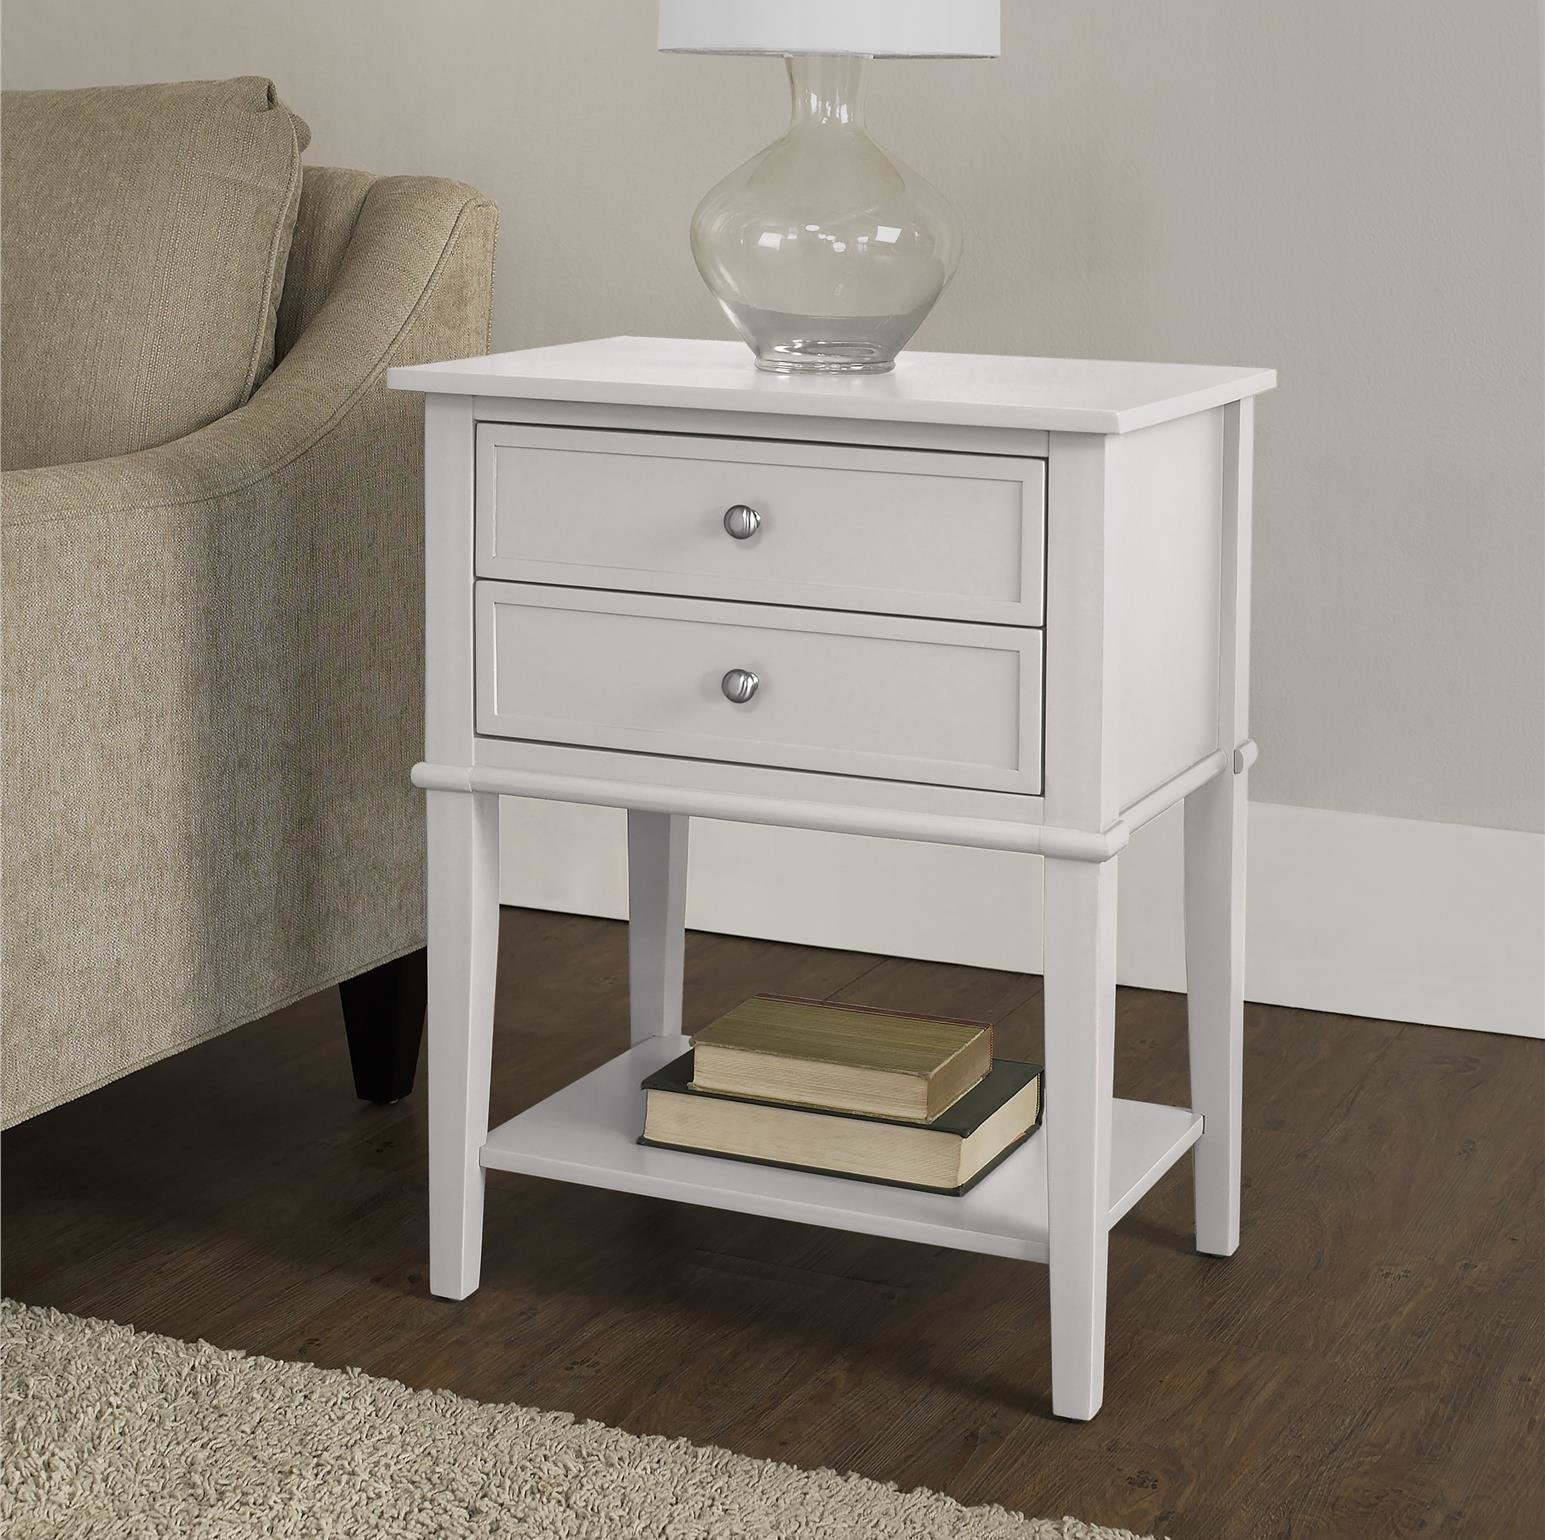 small white accent table dmitry end with storage ifrane quickview glass top corner pottery barn dining set telephone ikea wood mirror argos side tables door entry target furniture